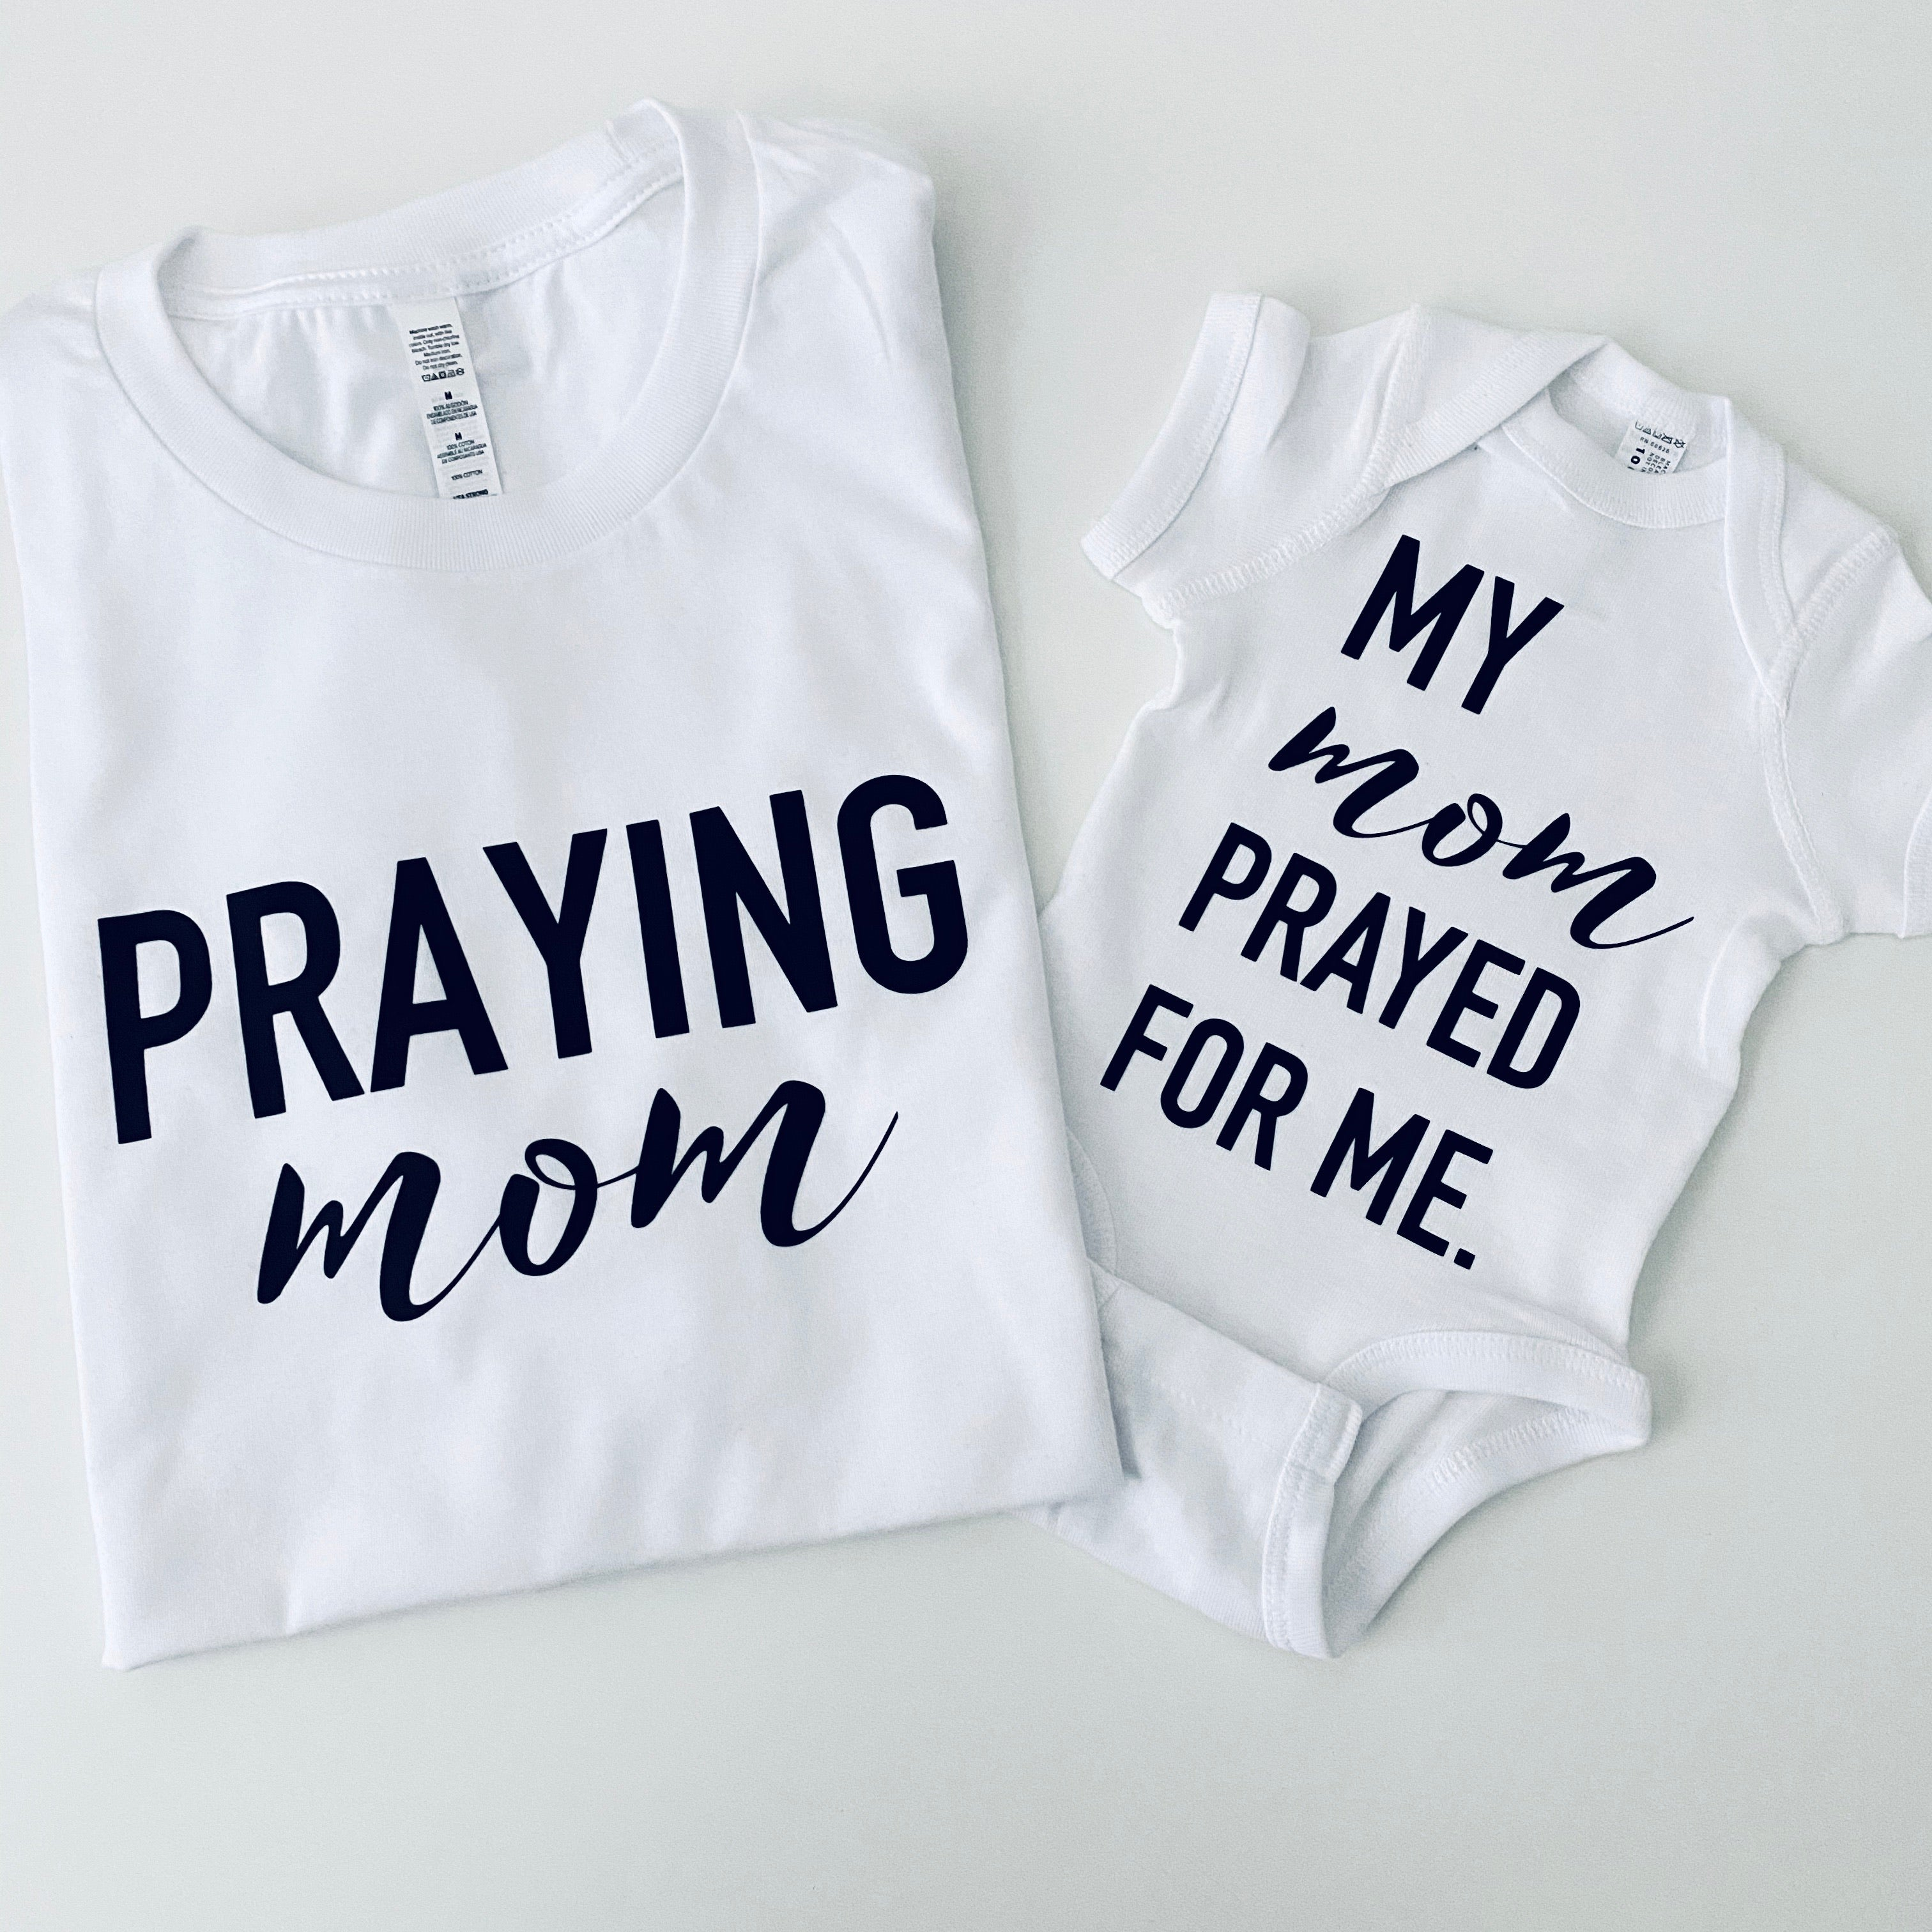 MY MOM PRAYED FOR ME BUNDLE -Black print